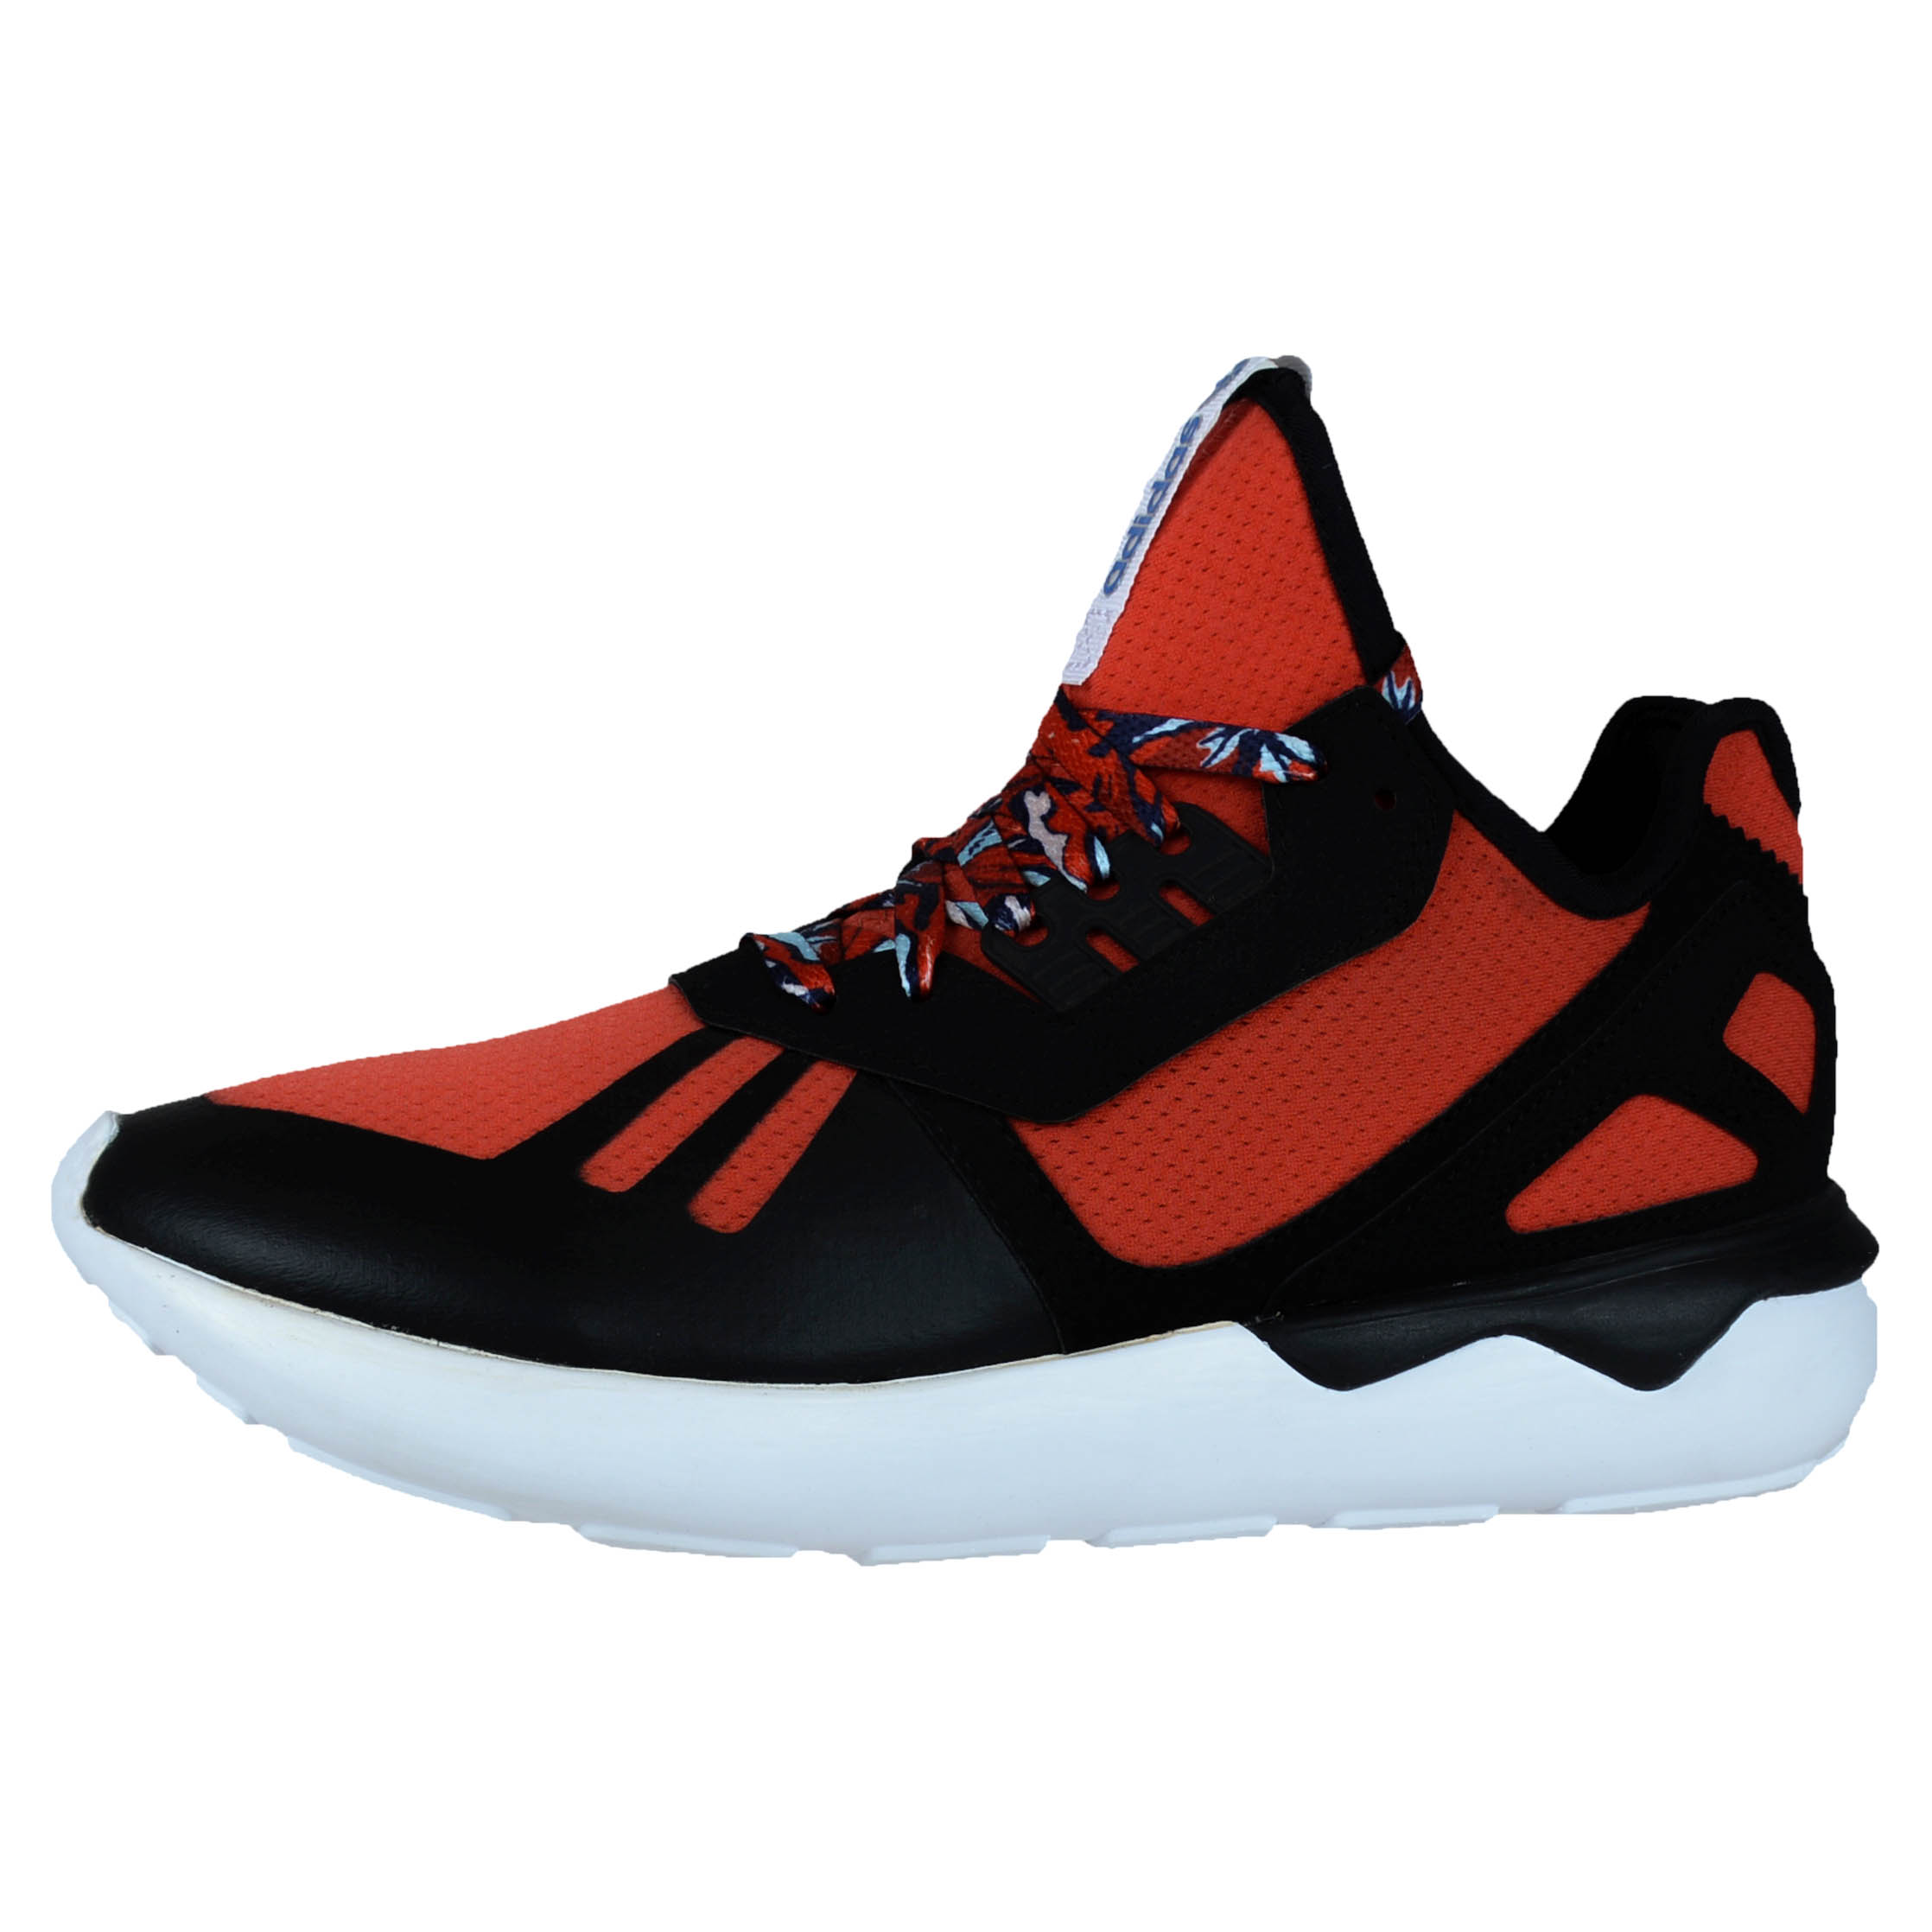 70046e0d2626 Adidas Tubular Amazon wallbank-lfc.co.uk